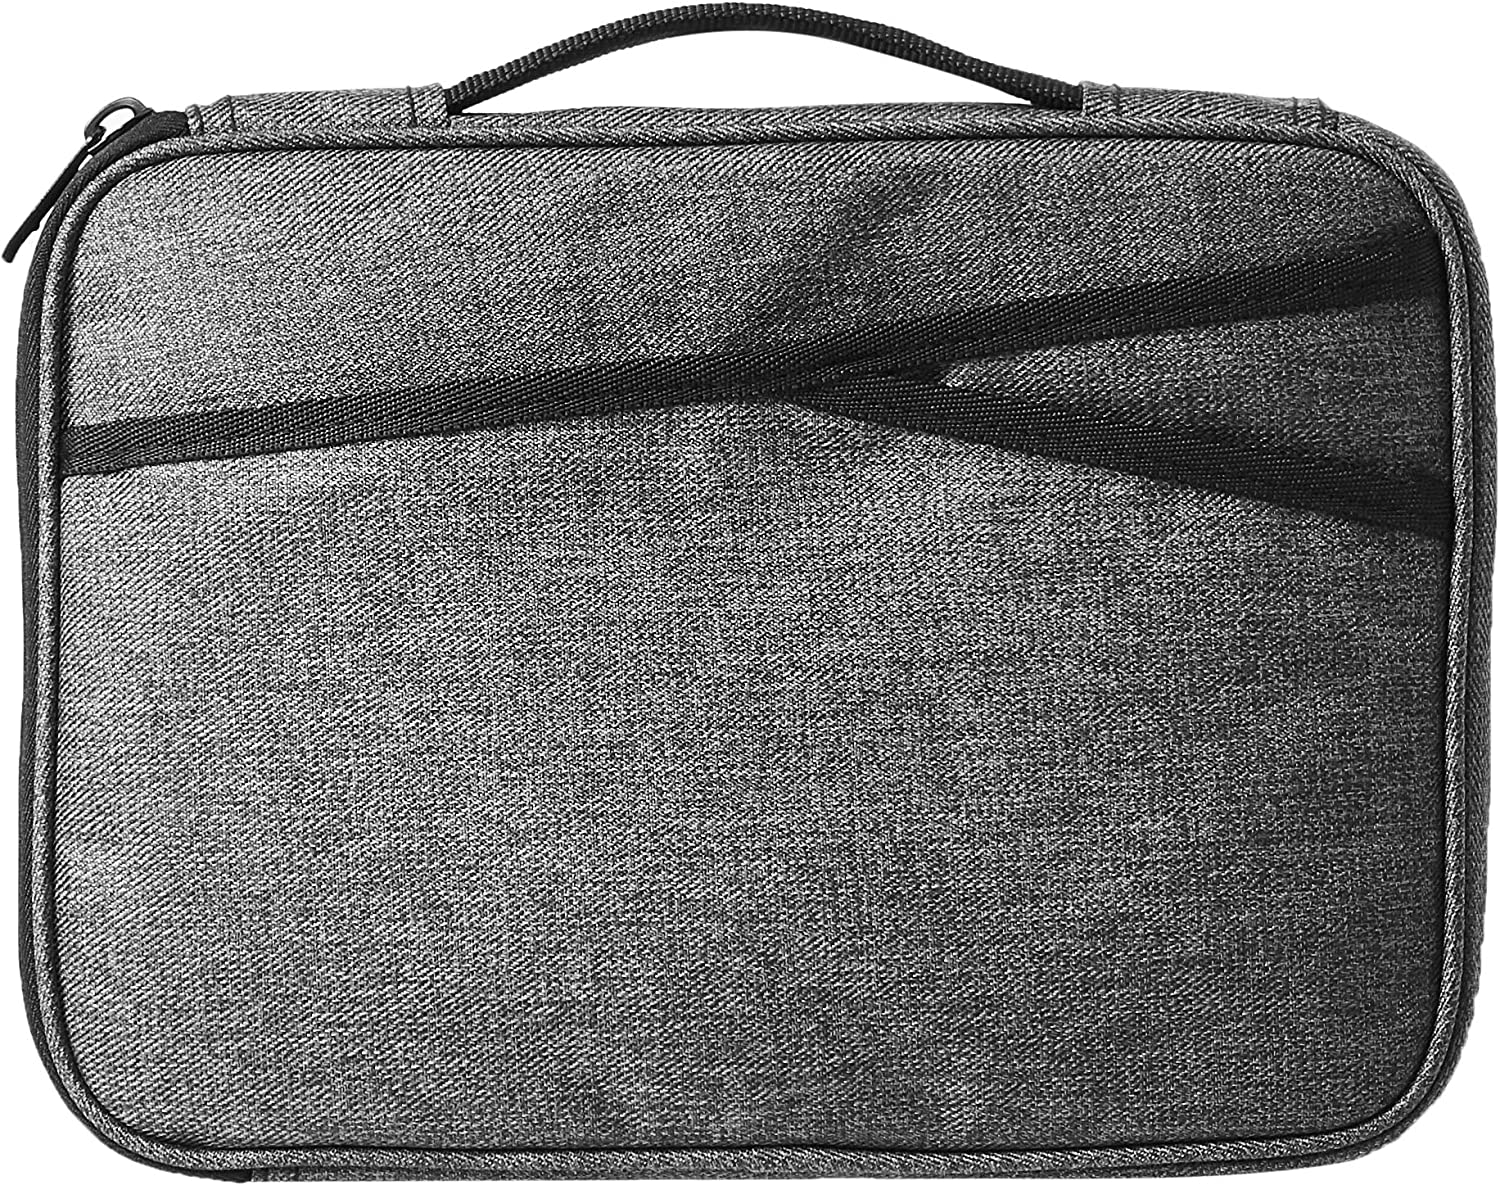 AmazonBasics Tablet Sleeve Case Bag - 10-Inch, Grey